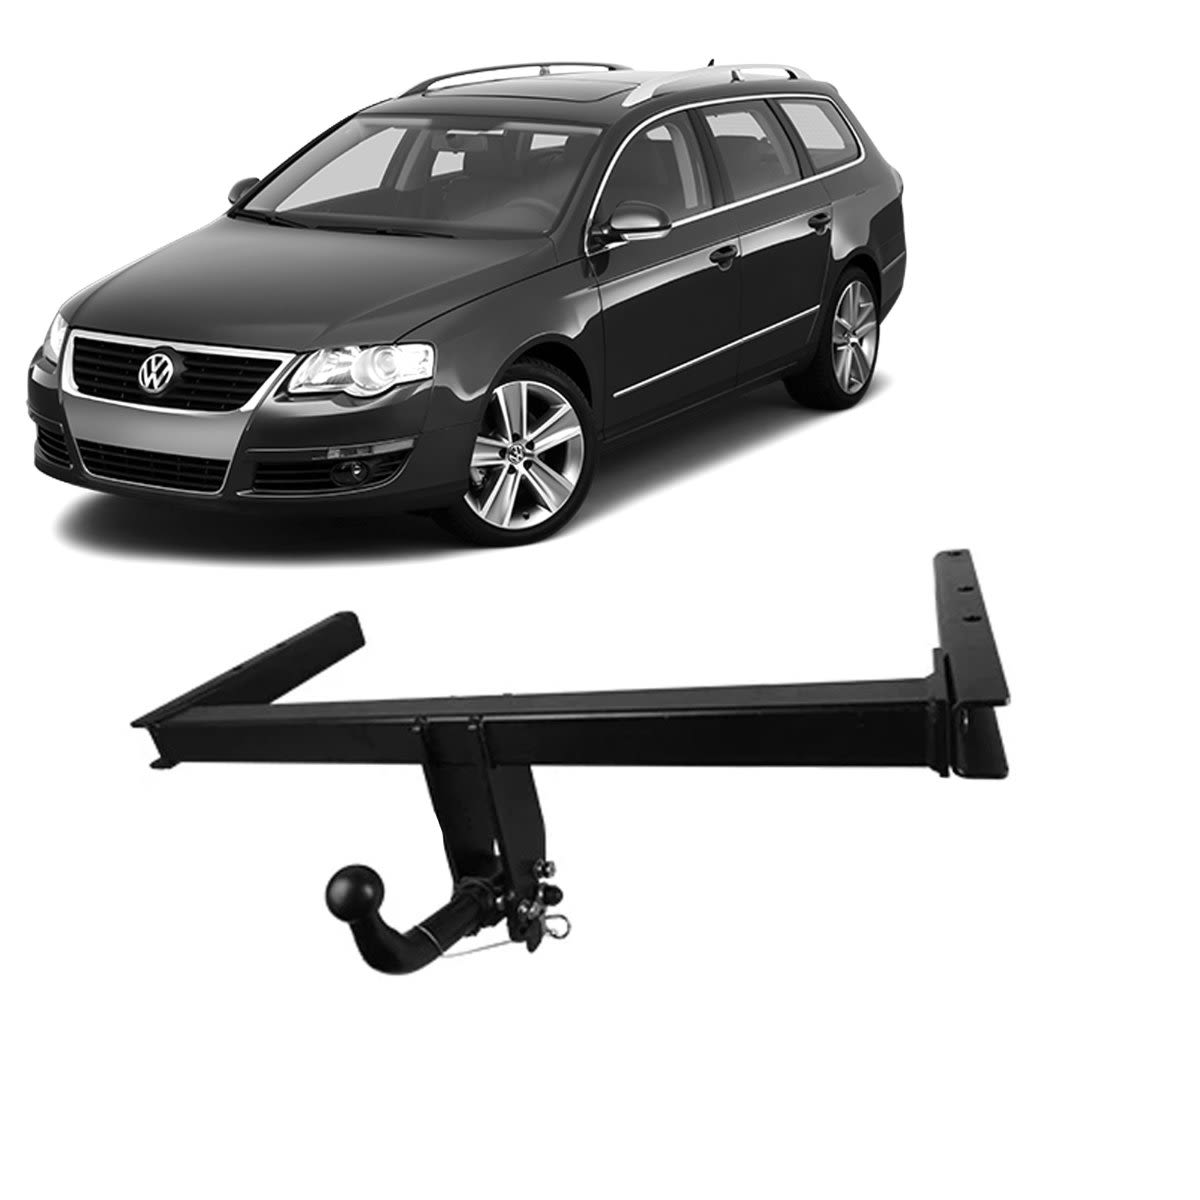 TAG Towbars European Style Tongue to suit Volkswagen Passat (06/1997 - 2006)